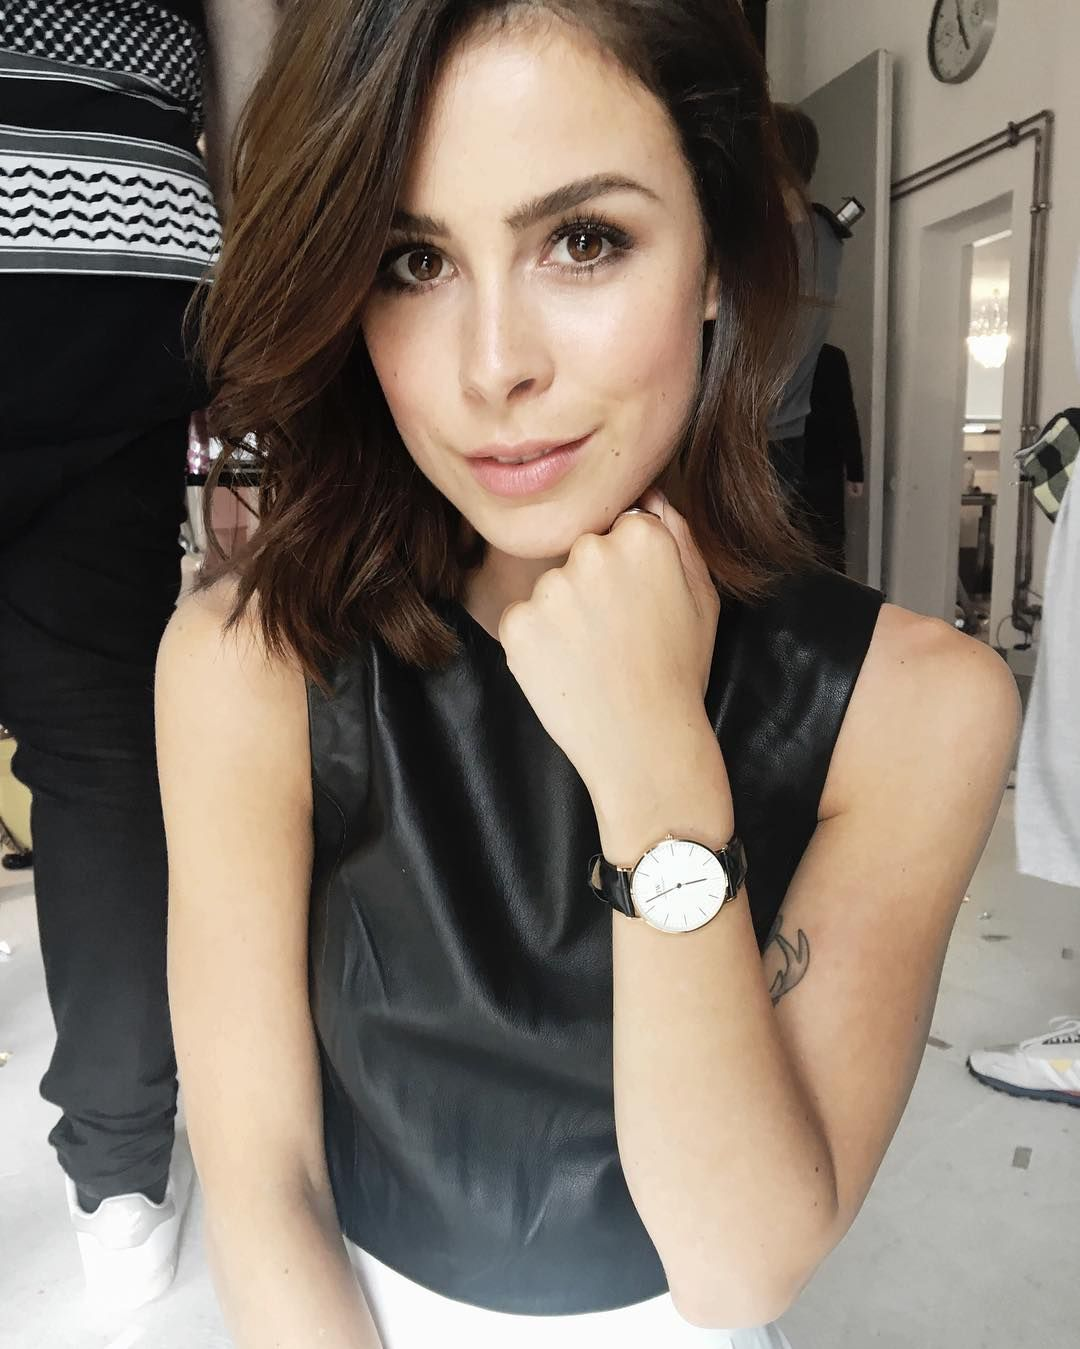 Lena Meyer Landrut #BeautifulFemales #players #GoodMorning #females